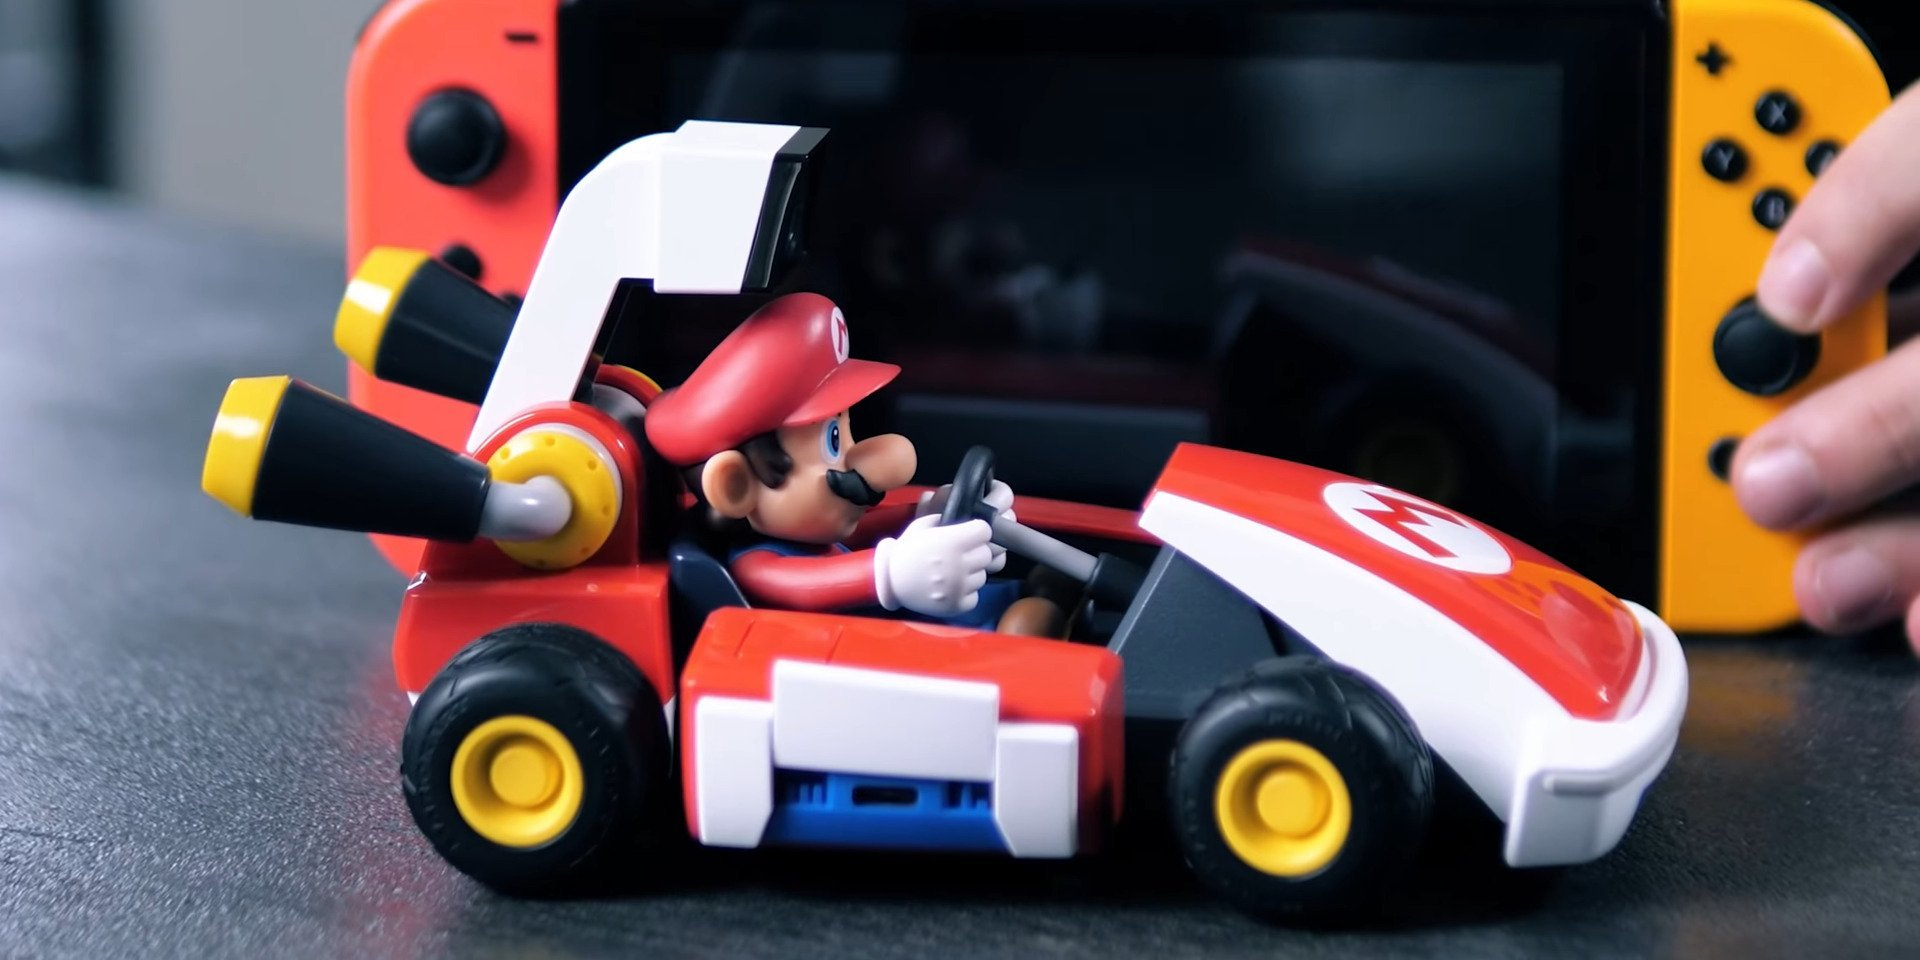 Mario Kart Live Home Circuit : on a transformé la rédaction en piste de course